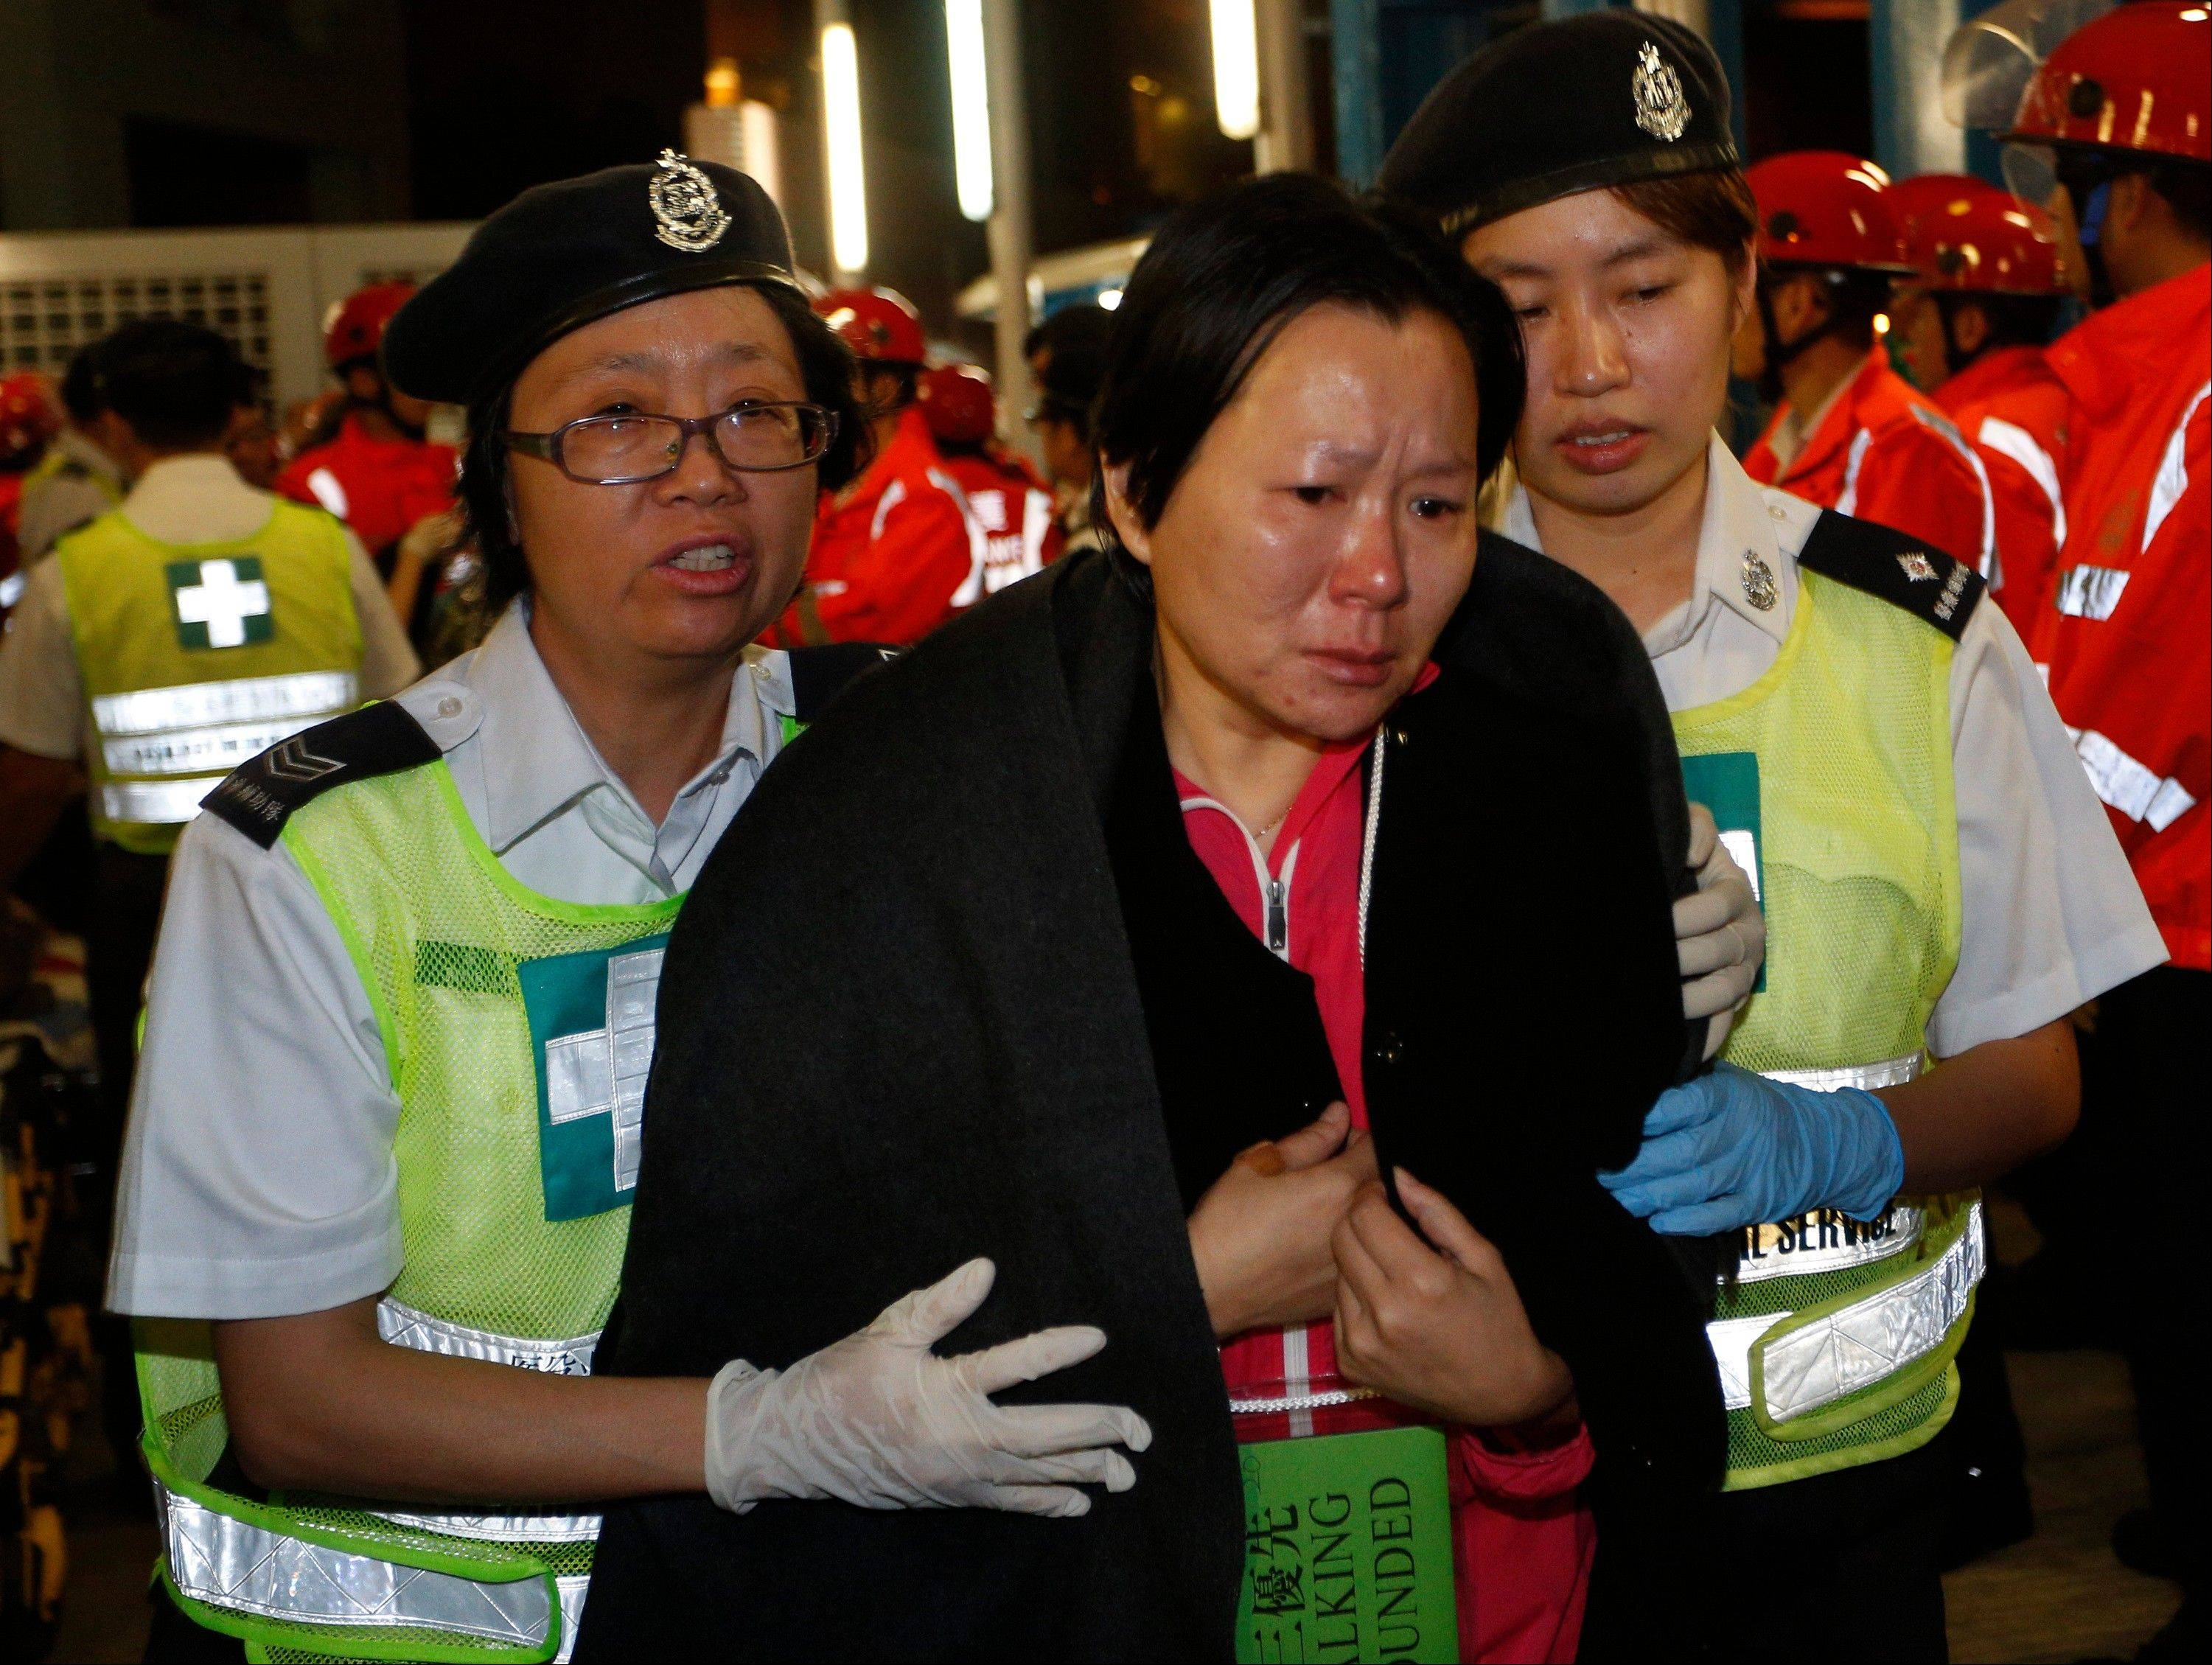 A survivor supported by rescuers, is taken onto shore after a collision involving two vessels in Hong Kong Tuesday, Oct. 2, 2012. Authorities in Hong Kong have rescued 101 people after a ferry collided with a boat and sank. A local broadcaster says eight people died. The government said in a statement that the ferry was carrying about 120 people when the accident happened Monday night near Lamma Island, off the southwestern coast of Hong Kong Island. Few other details were given.